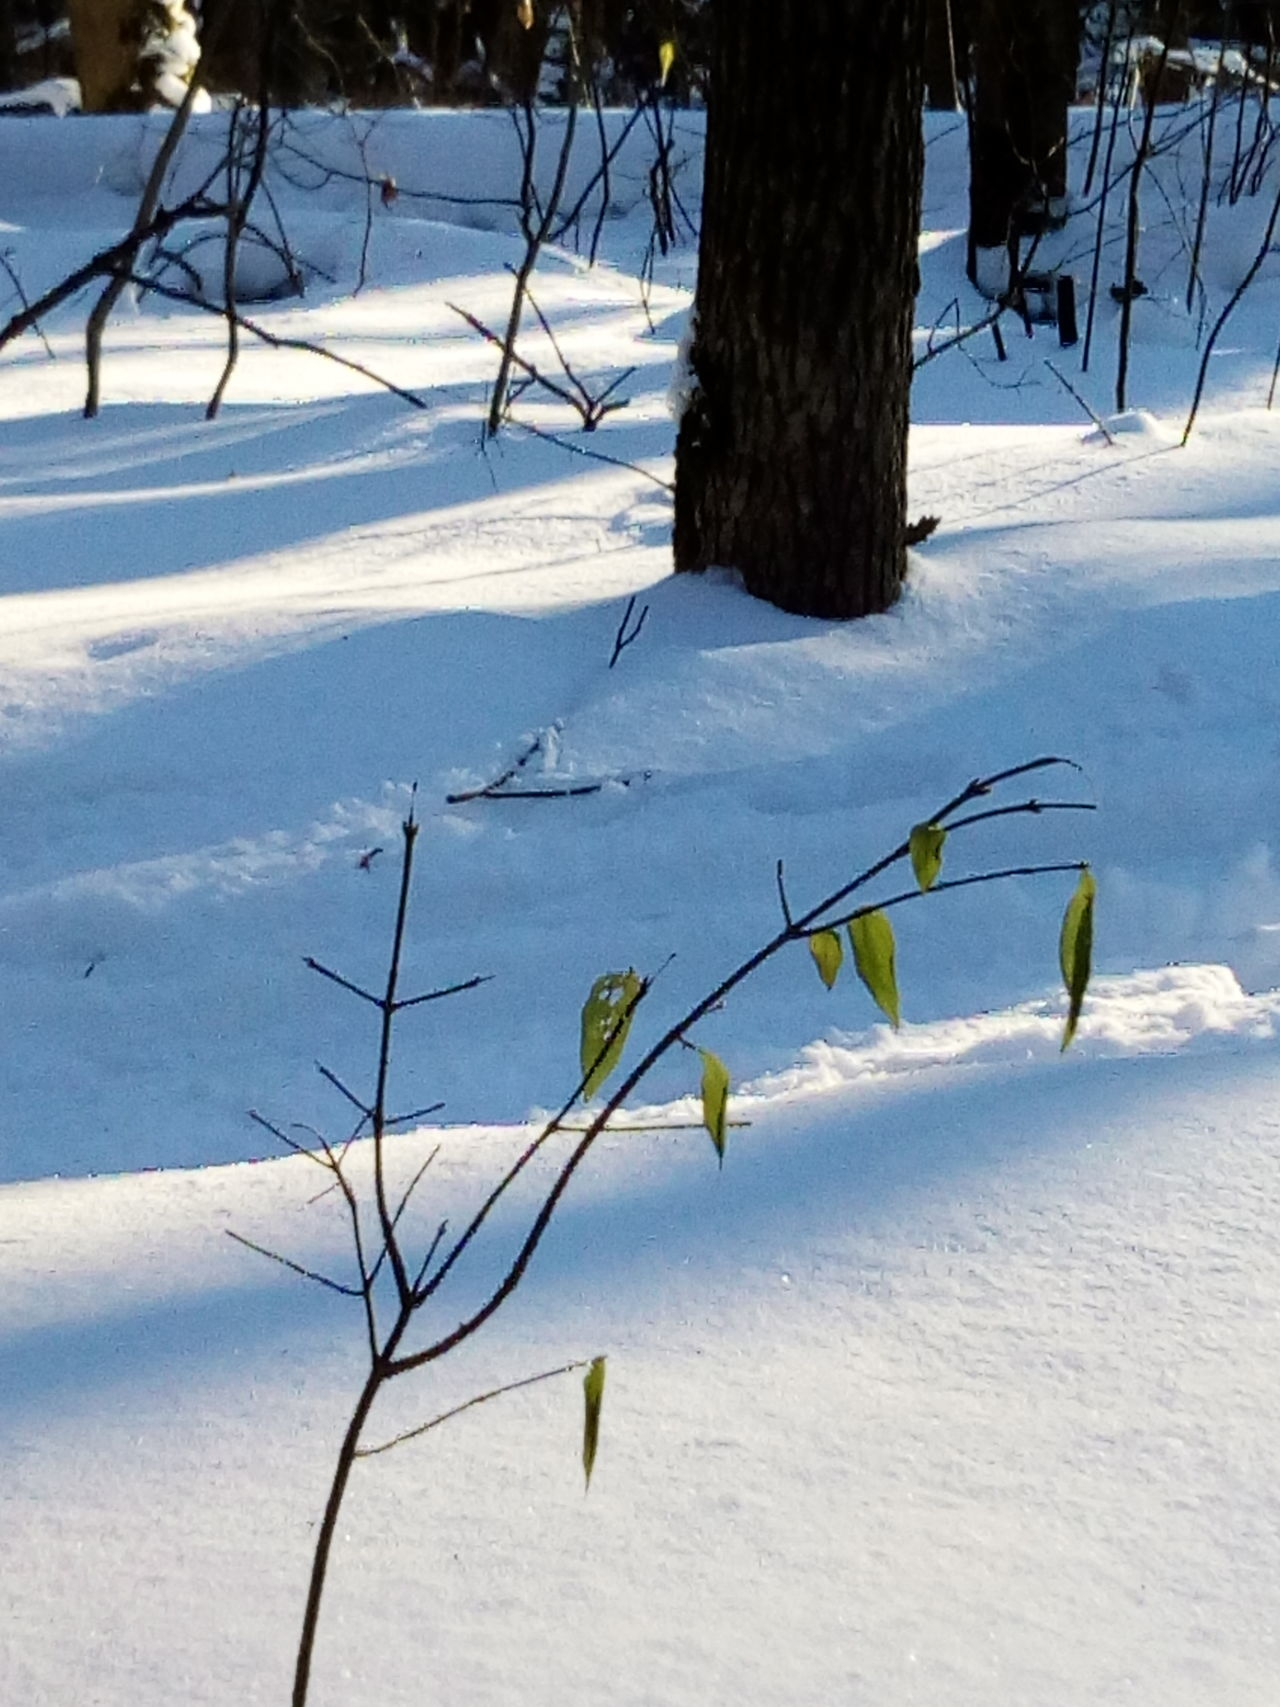 Winter Snow Cold Temperature Nature Tree Tranquility Outdoors Day Plant No People Tranquil Scene Branch Bare Tree Beauty In Nature Scenics Tree Trunk Nature_collection Frozen Tranquility Landscape Shadow The Great Outdoors - 2016 EyeEm Awards EyeEm Nature Lover Close-up Forest